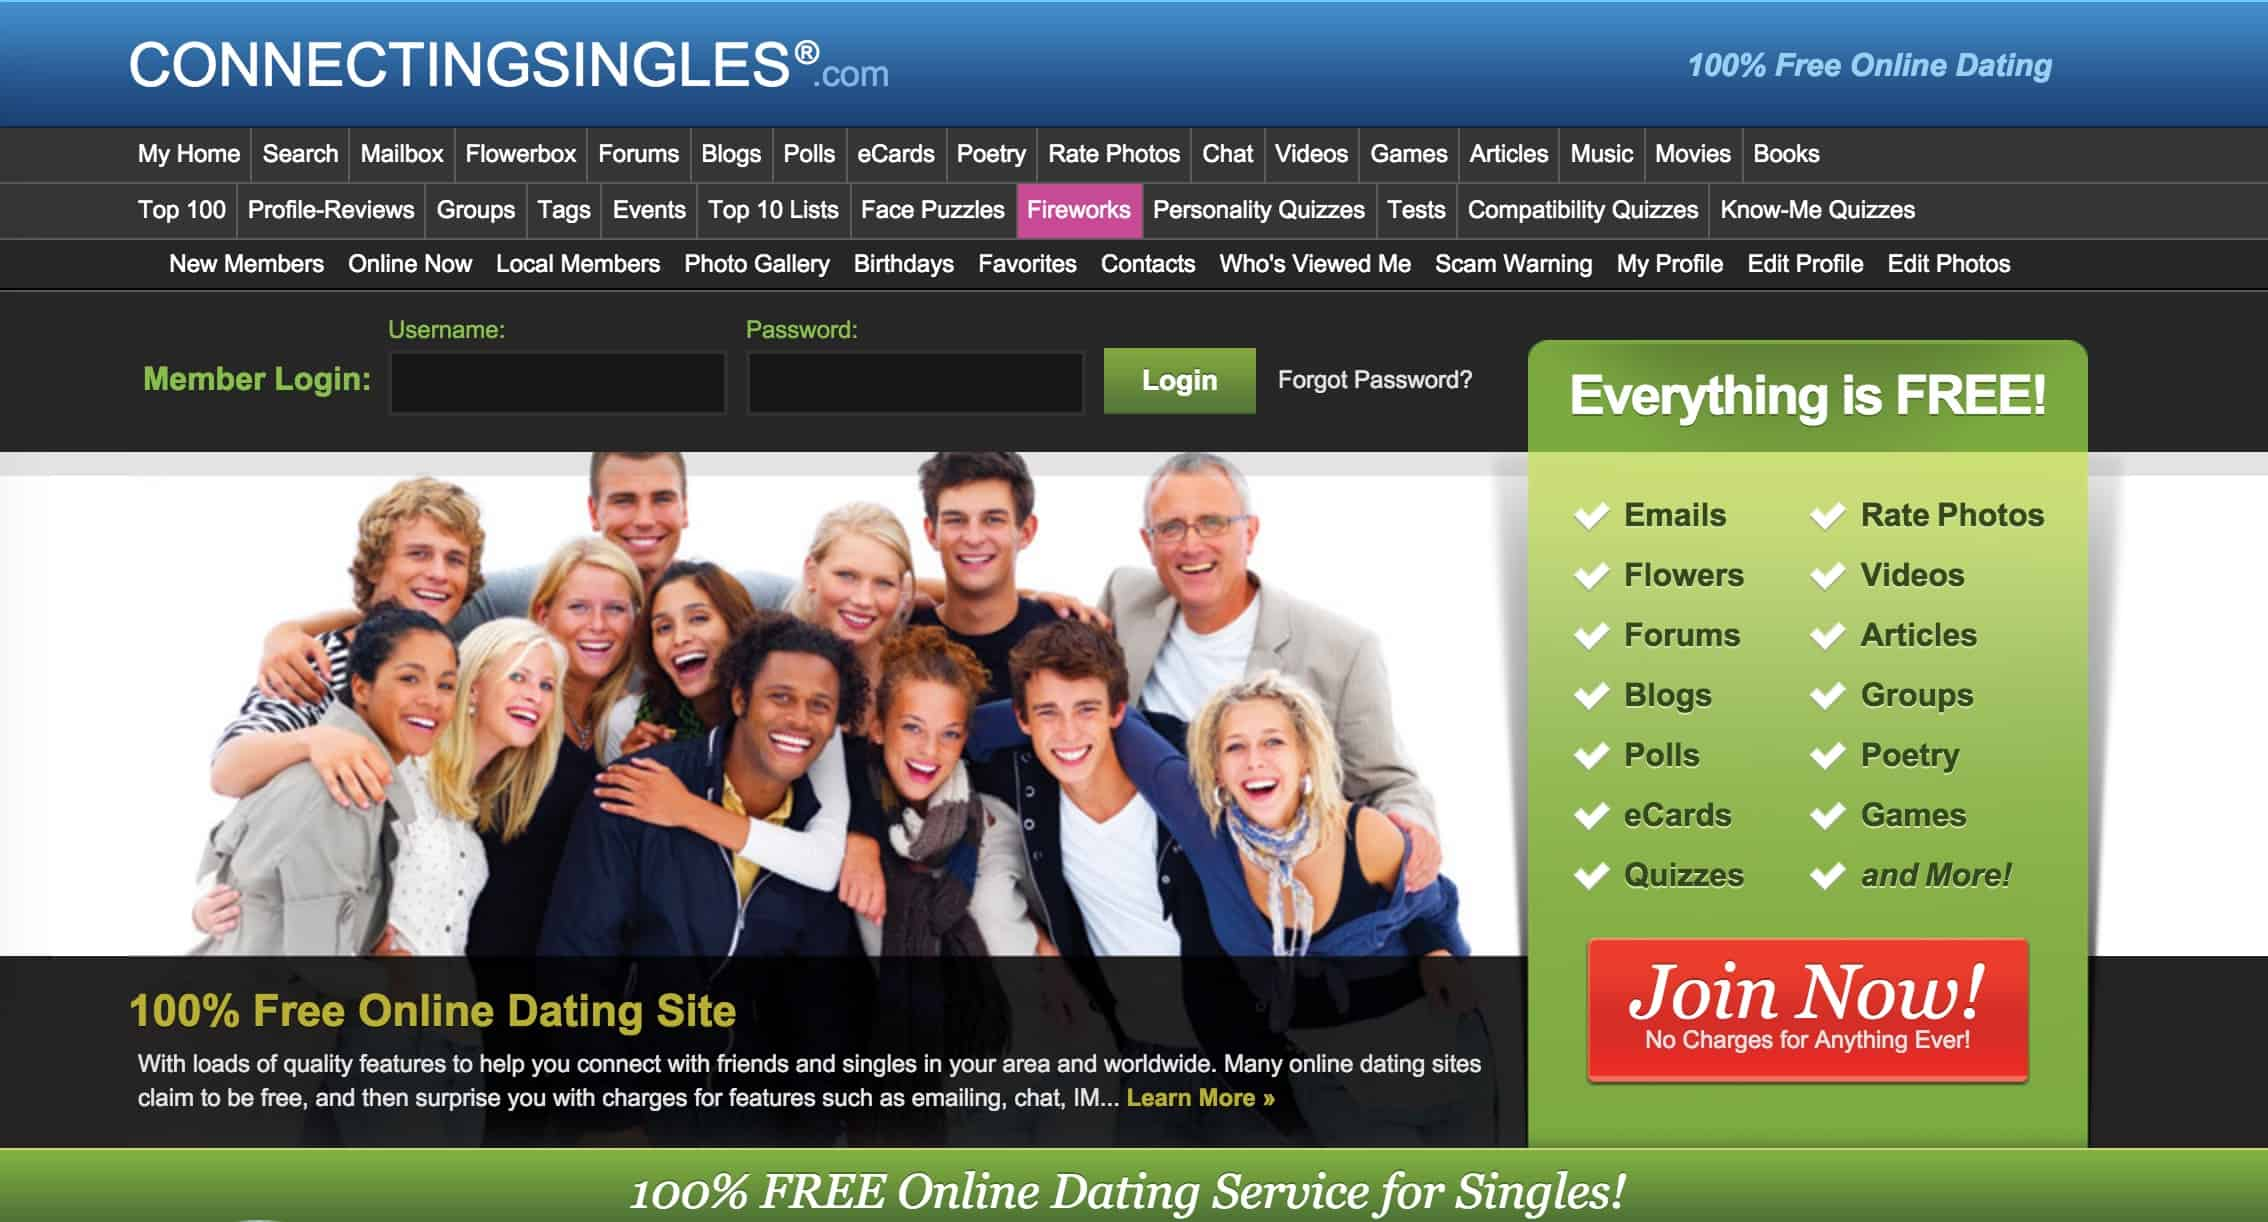 100% free online dating in saegertown 100% free dating site for singles, where you can browse profiles and photos, messaging, match with daters, and chat all features are free, no credit card required.